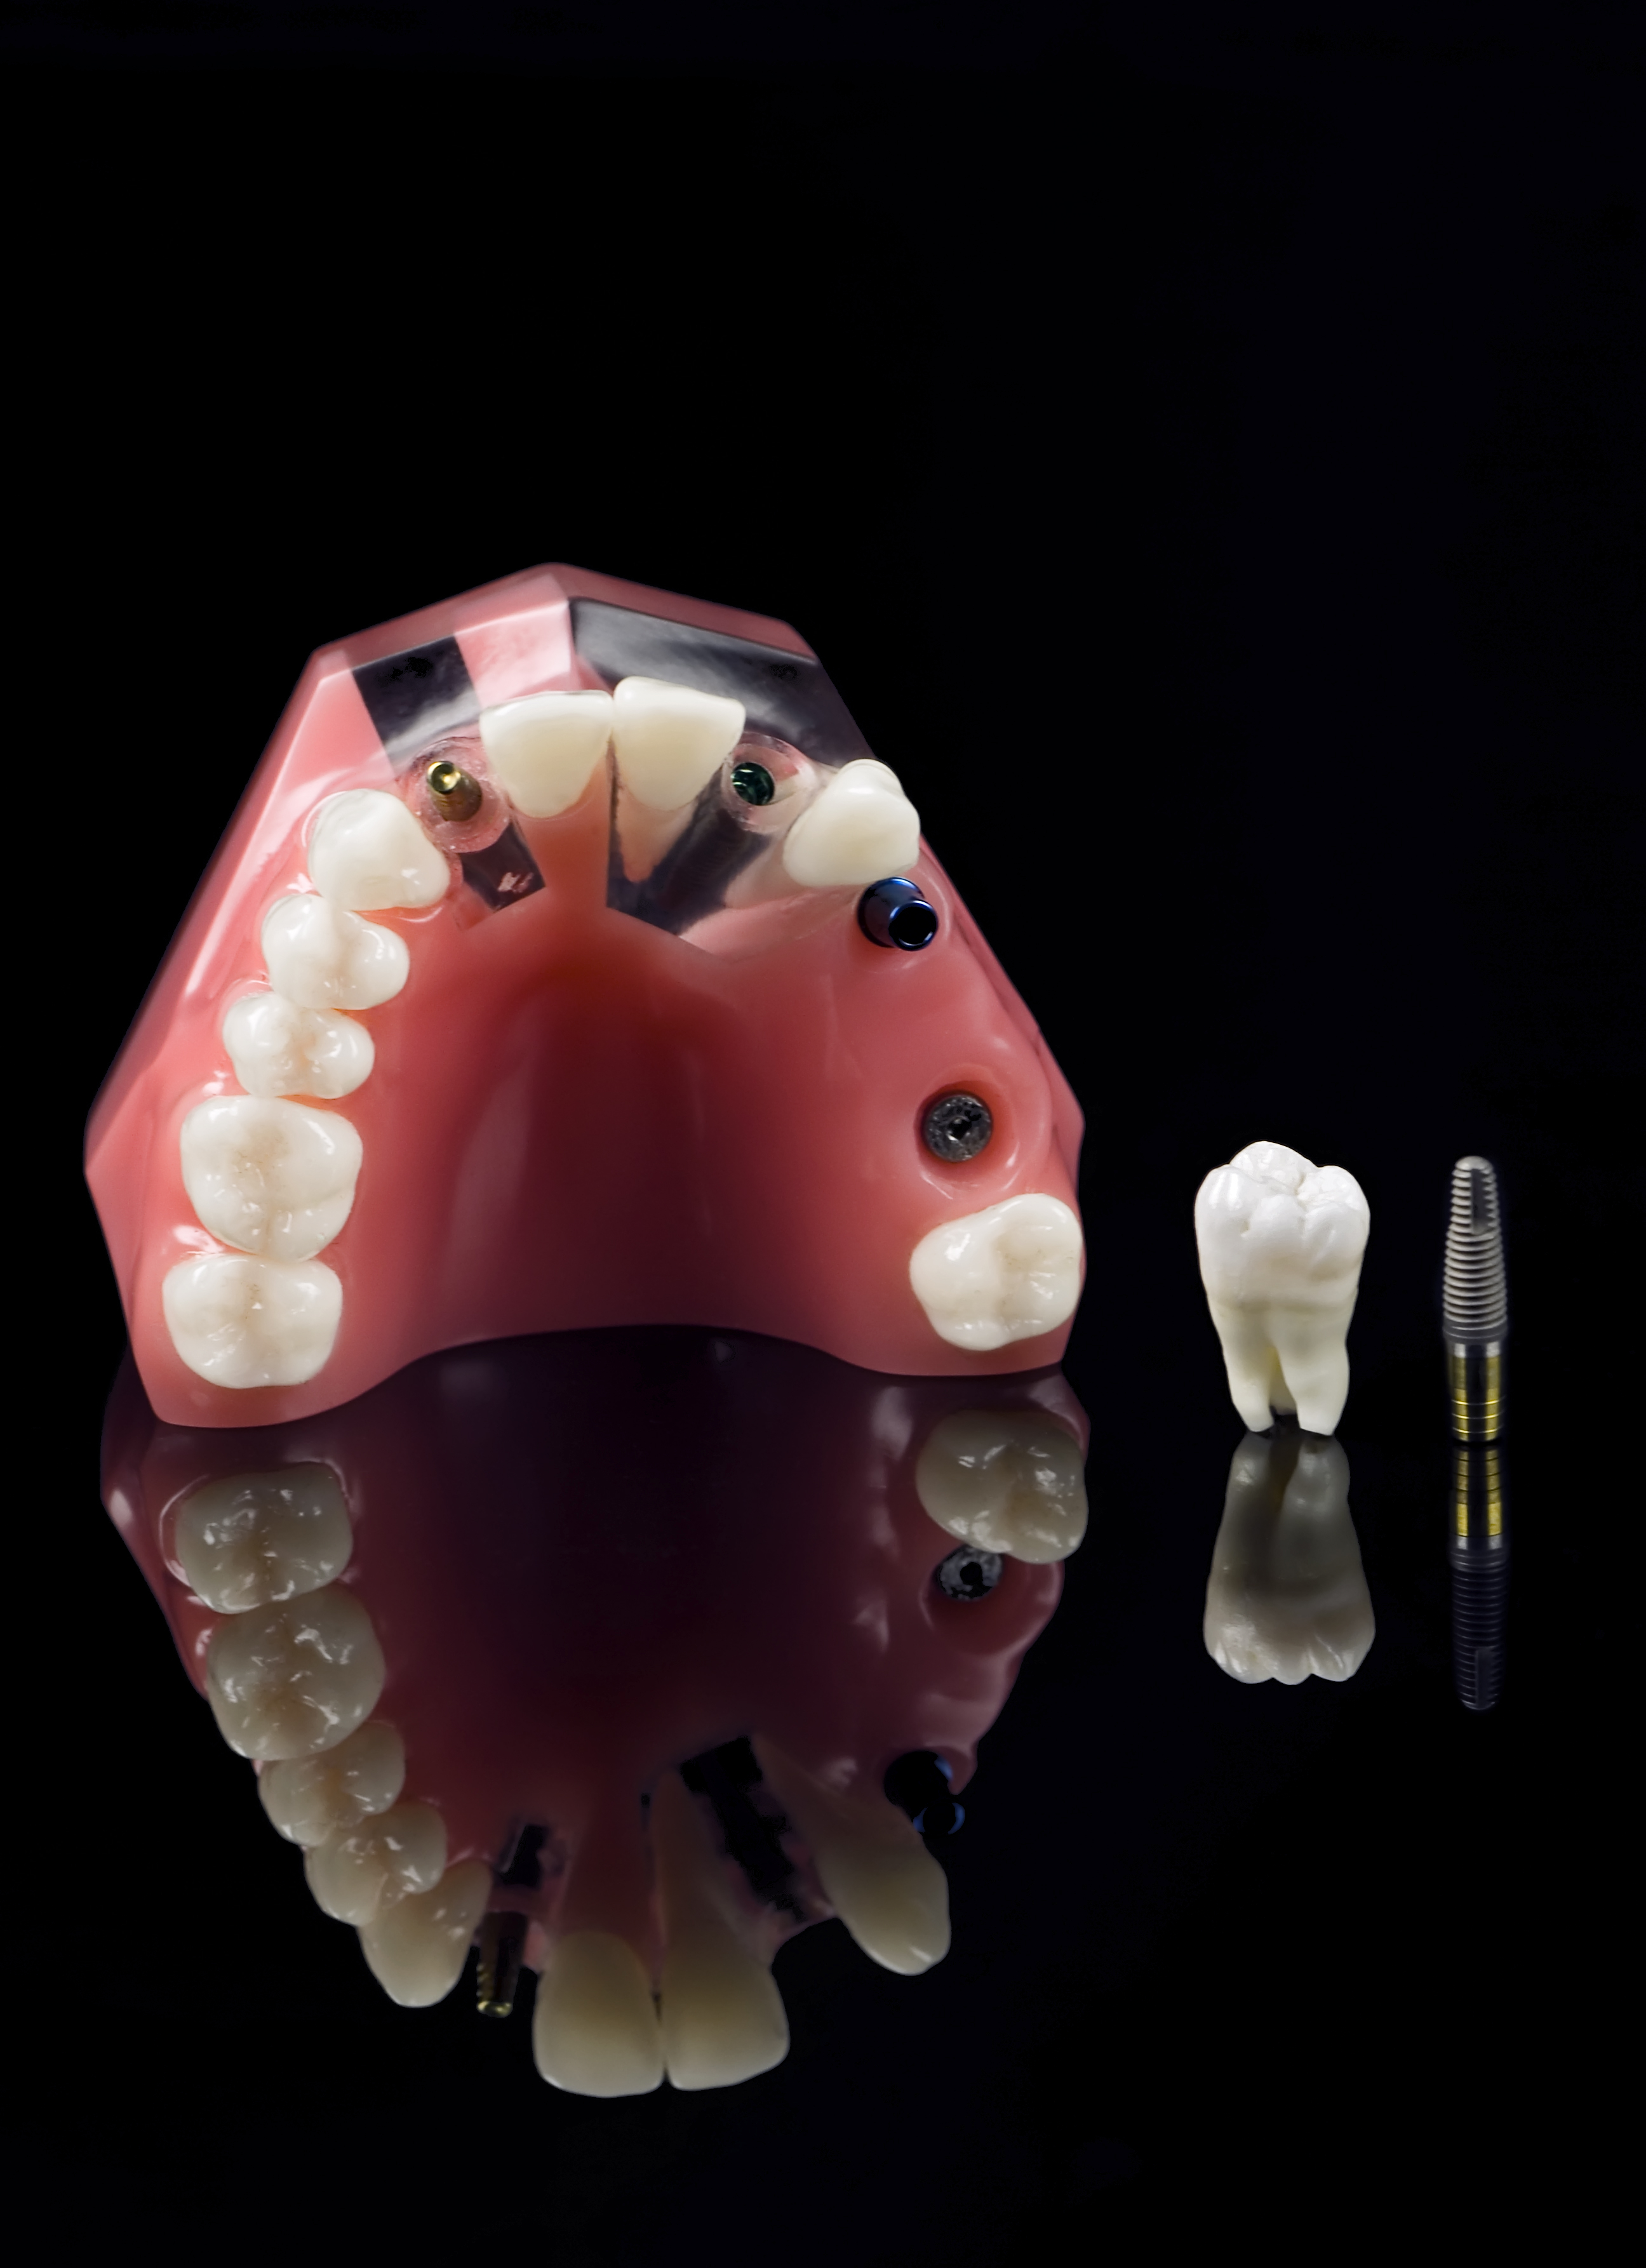 Implant Dentist in Sacremento